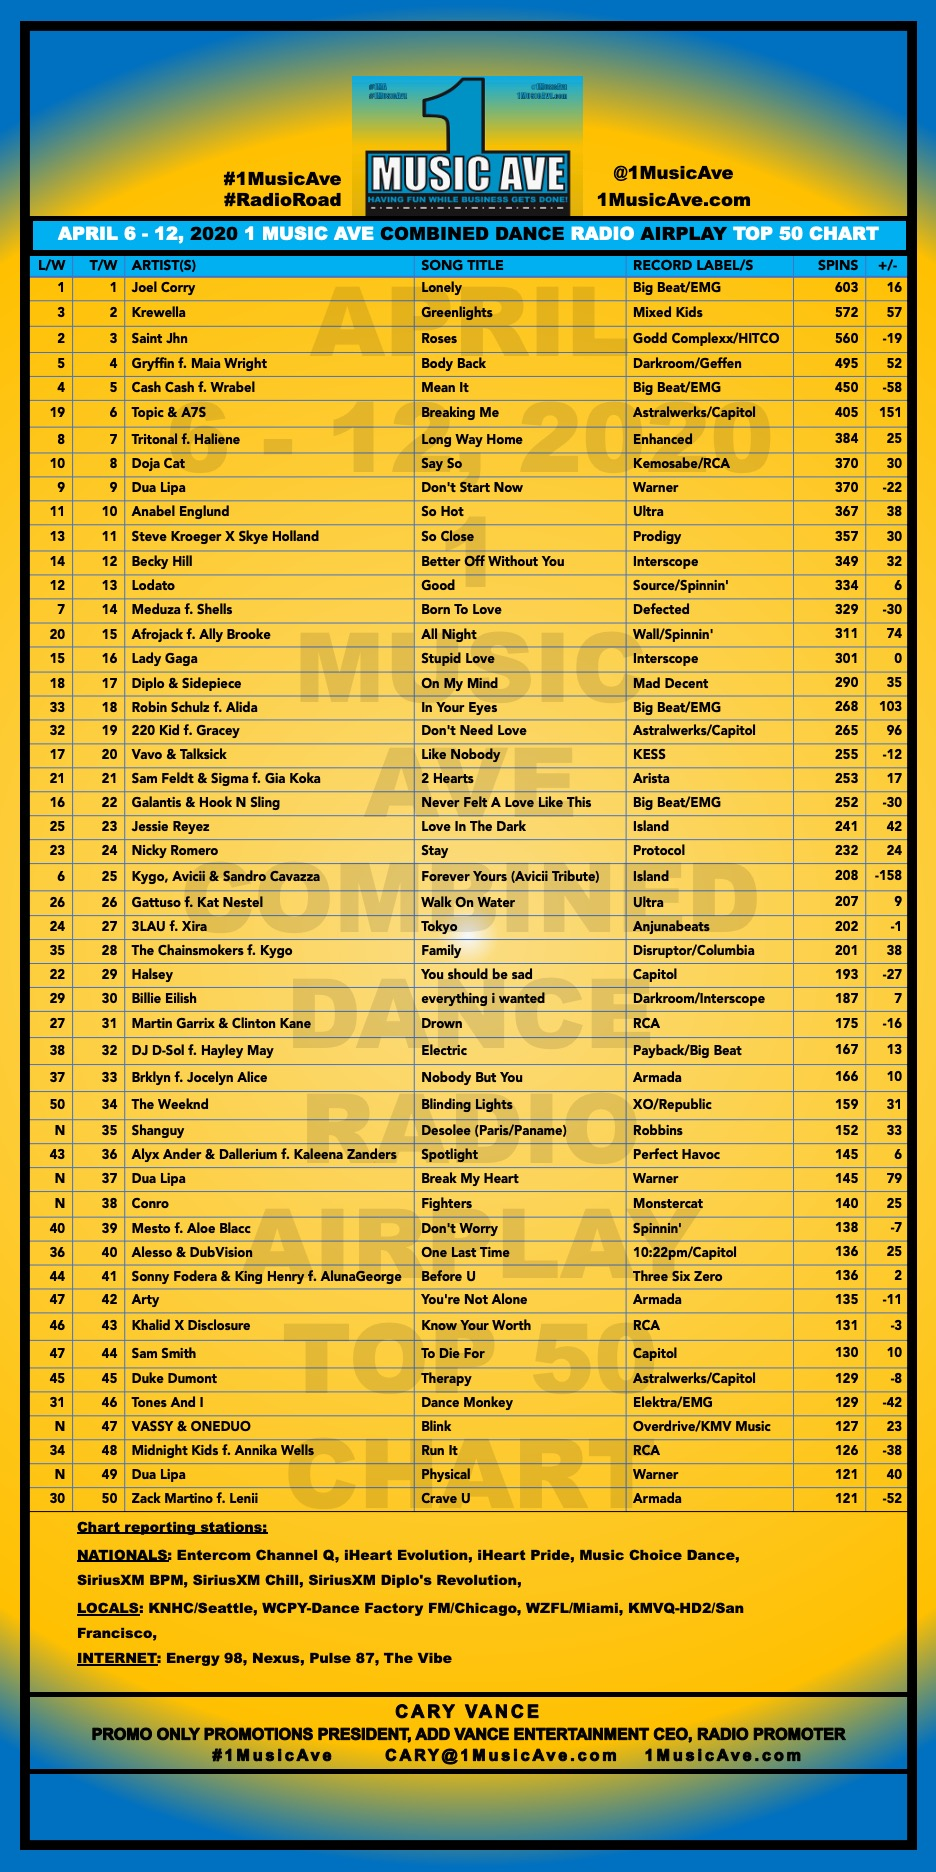 APRIL 6 - 12, 2020 1 MUSIC AVE COMBINED DANCE RADIO AIRPLAY TOP 50 CHART